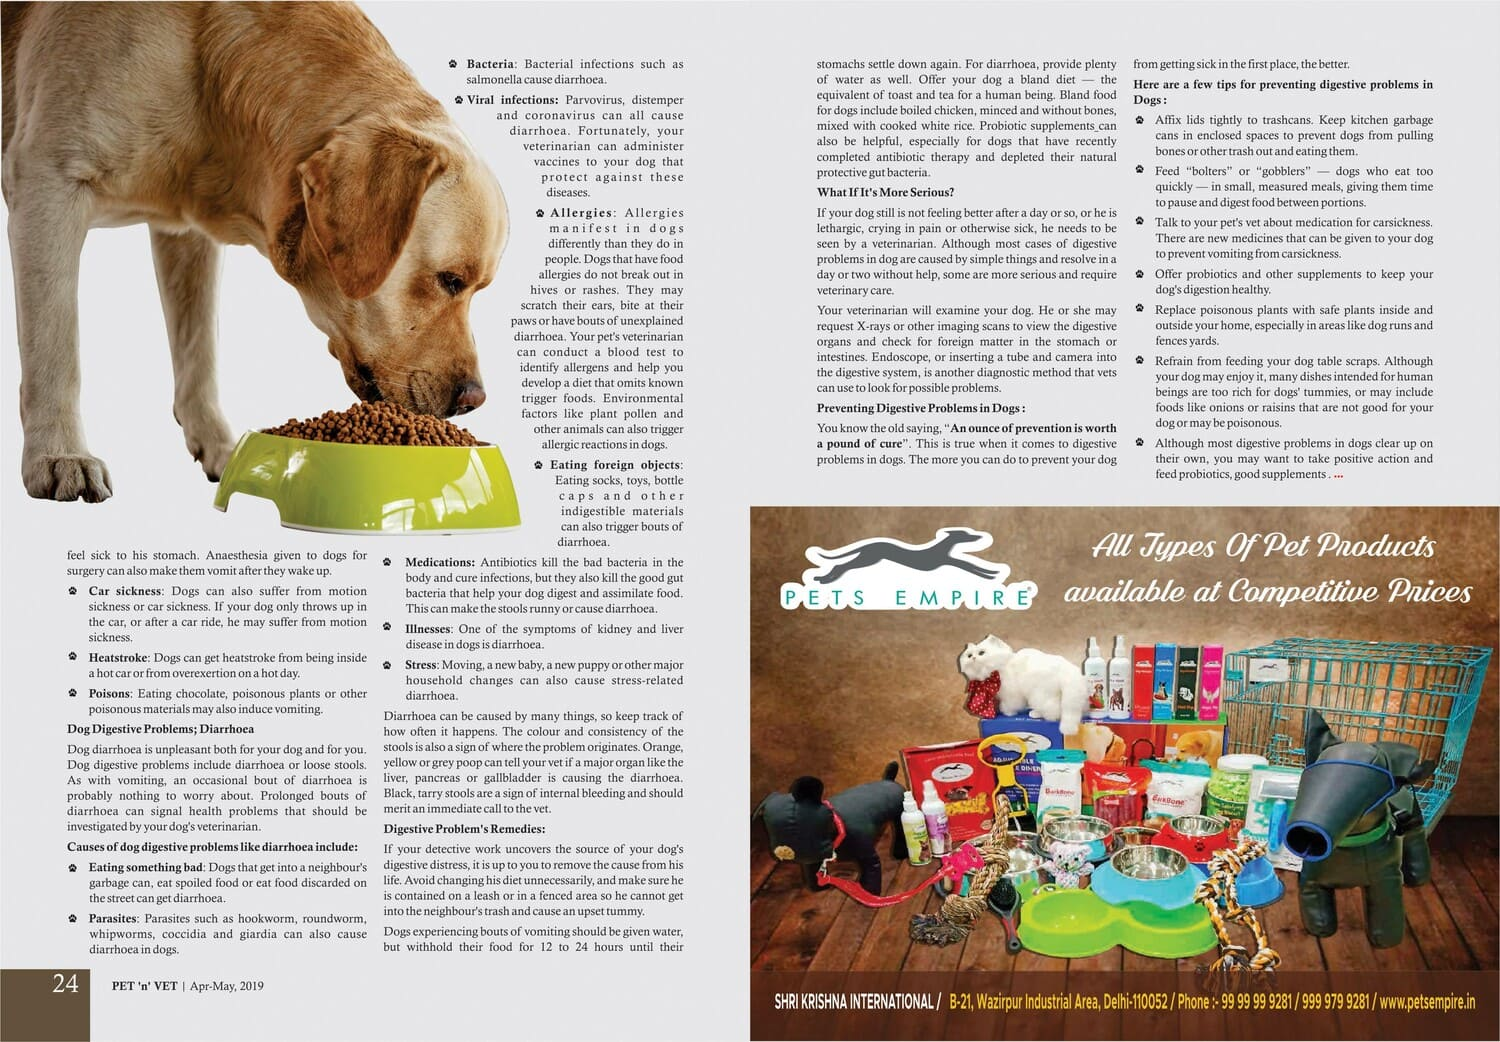 Dog's Digestive System Problems & Remedies